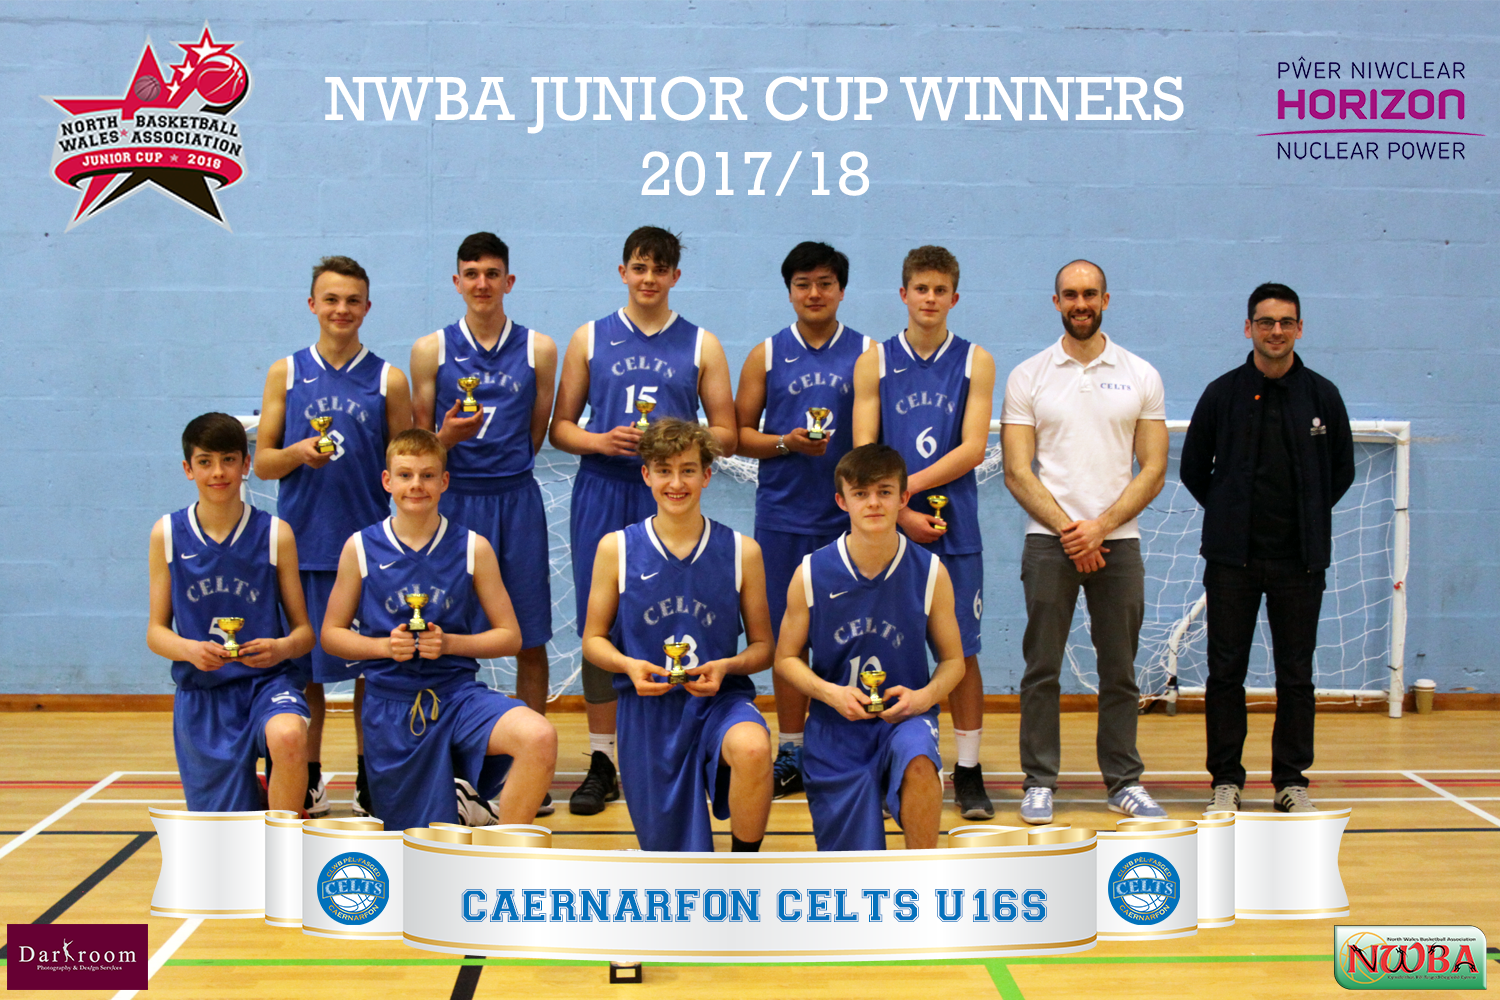 NWBA Junior Cup 2018 - U16s Winners